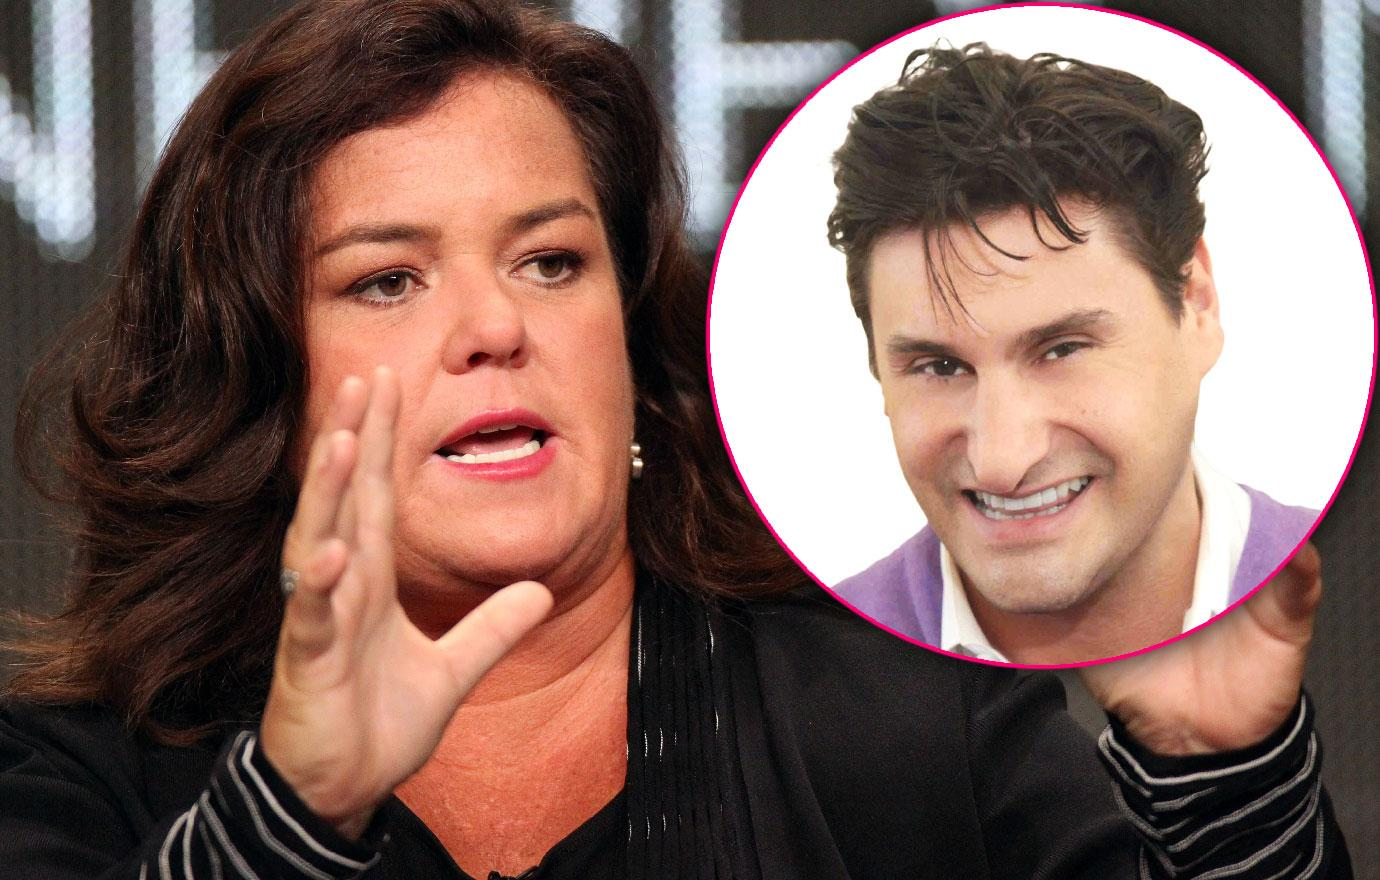 Rosie ODonnell Moving Back To NYC With Daughter After Ex Suicide